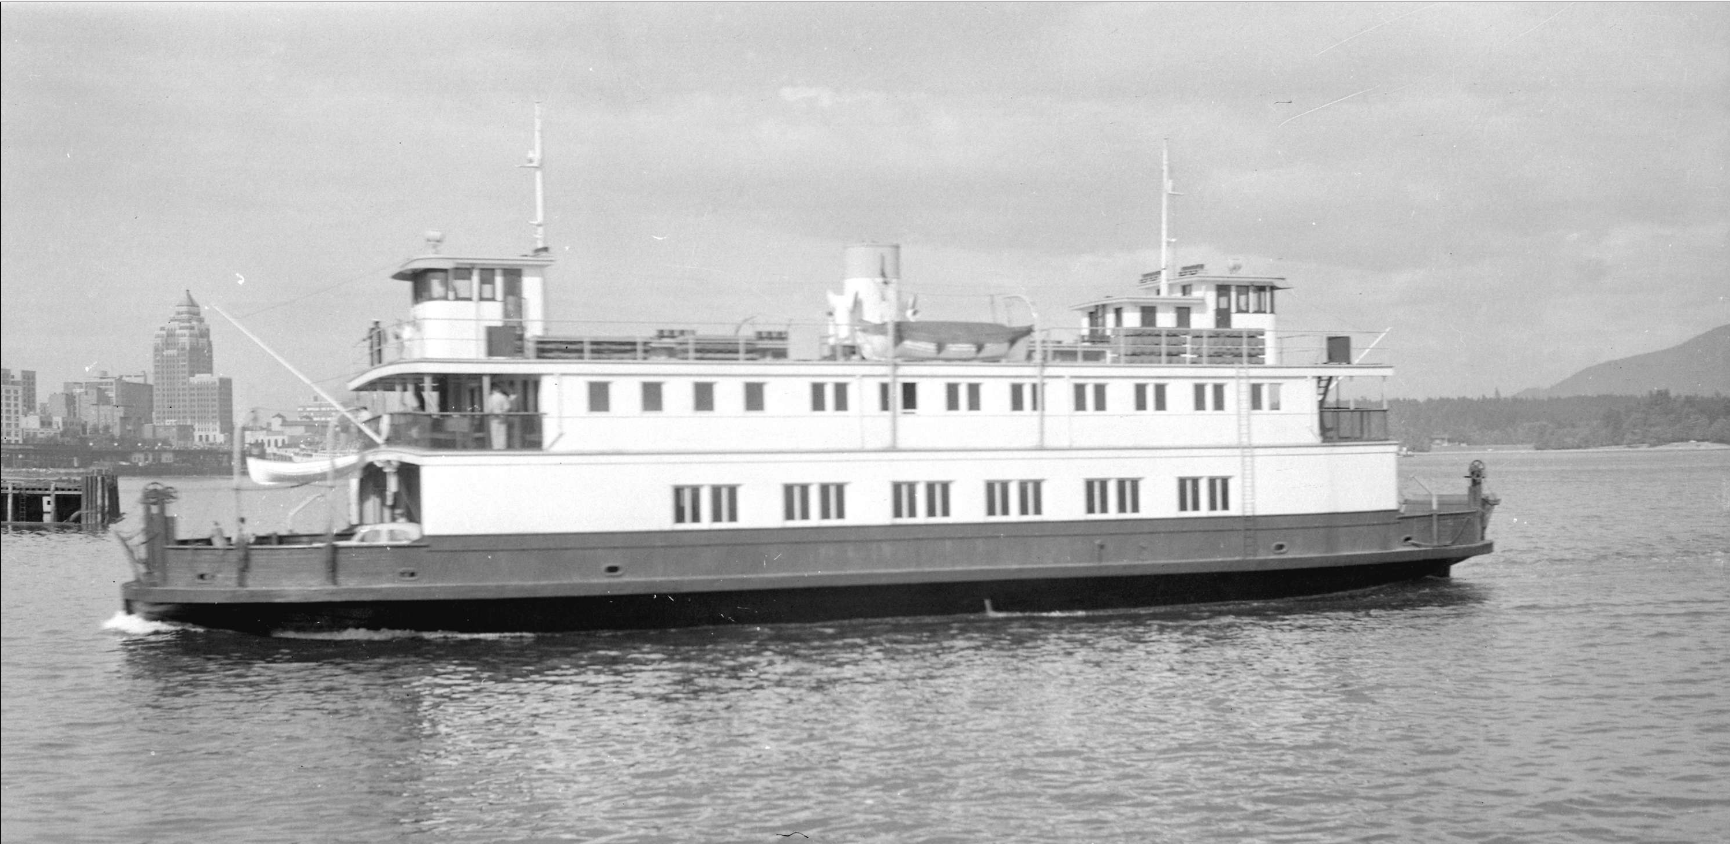 Ferry No. 5 in 1958. Photo courtesy Vancouver Archives 447.7232.1